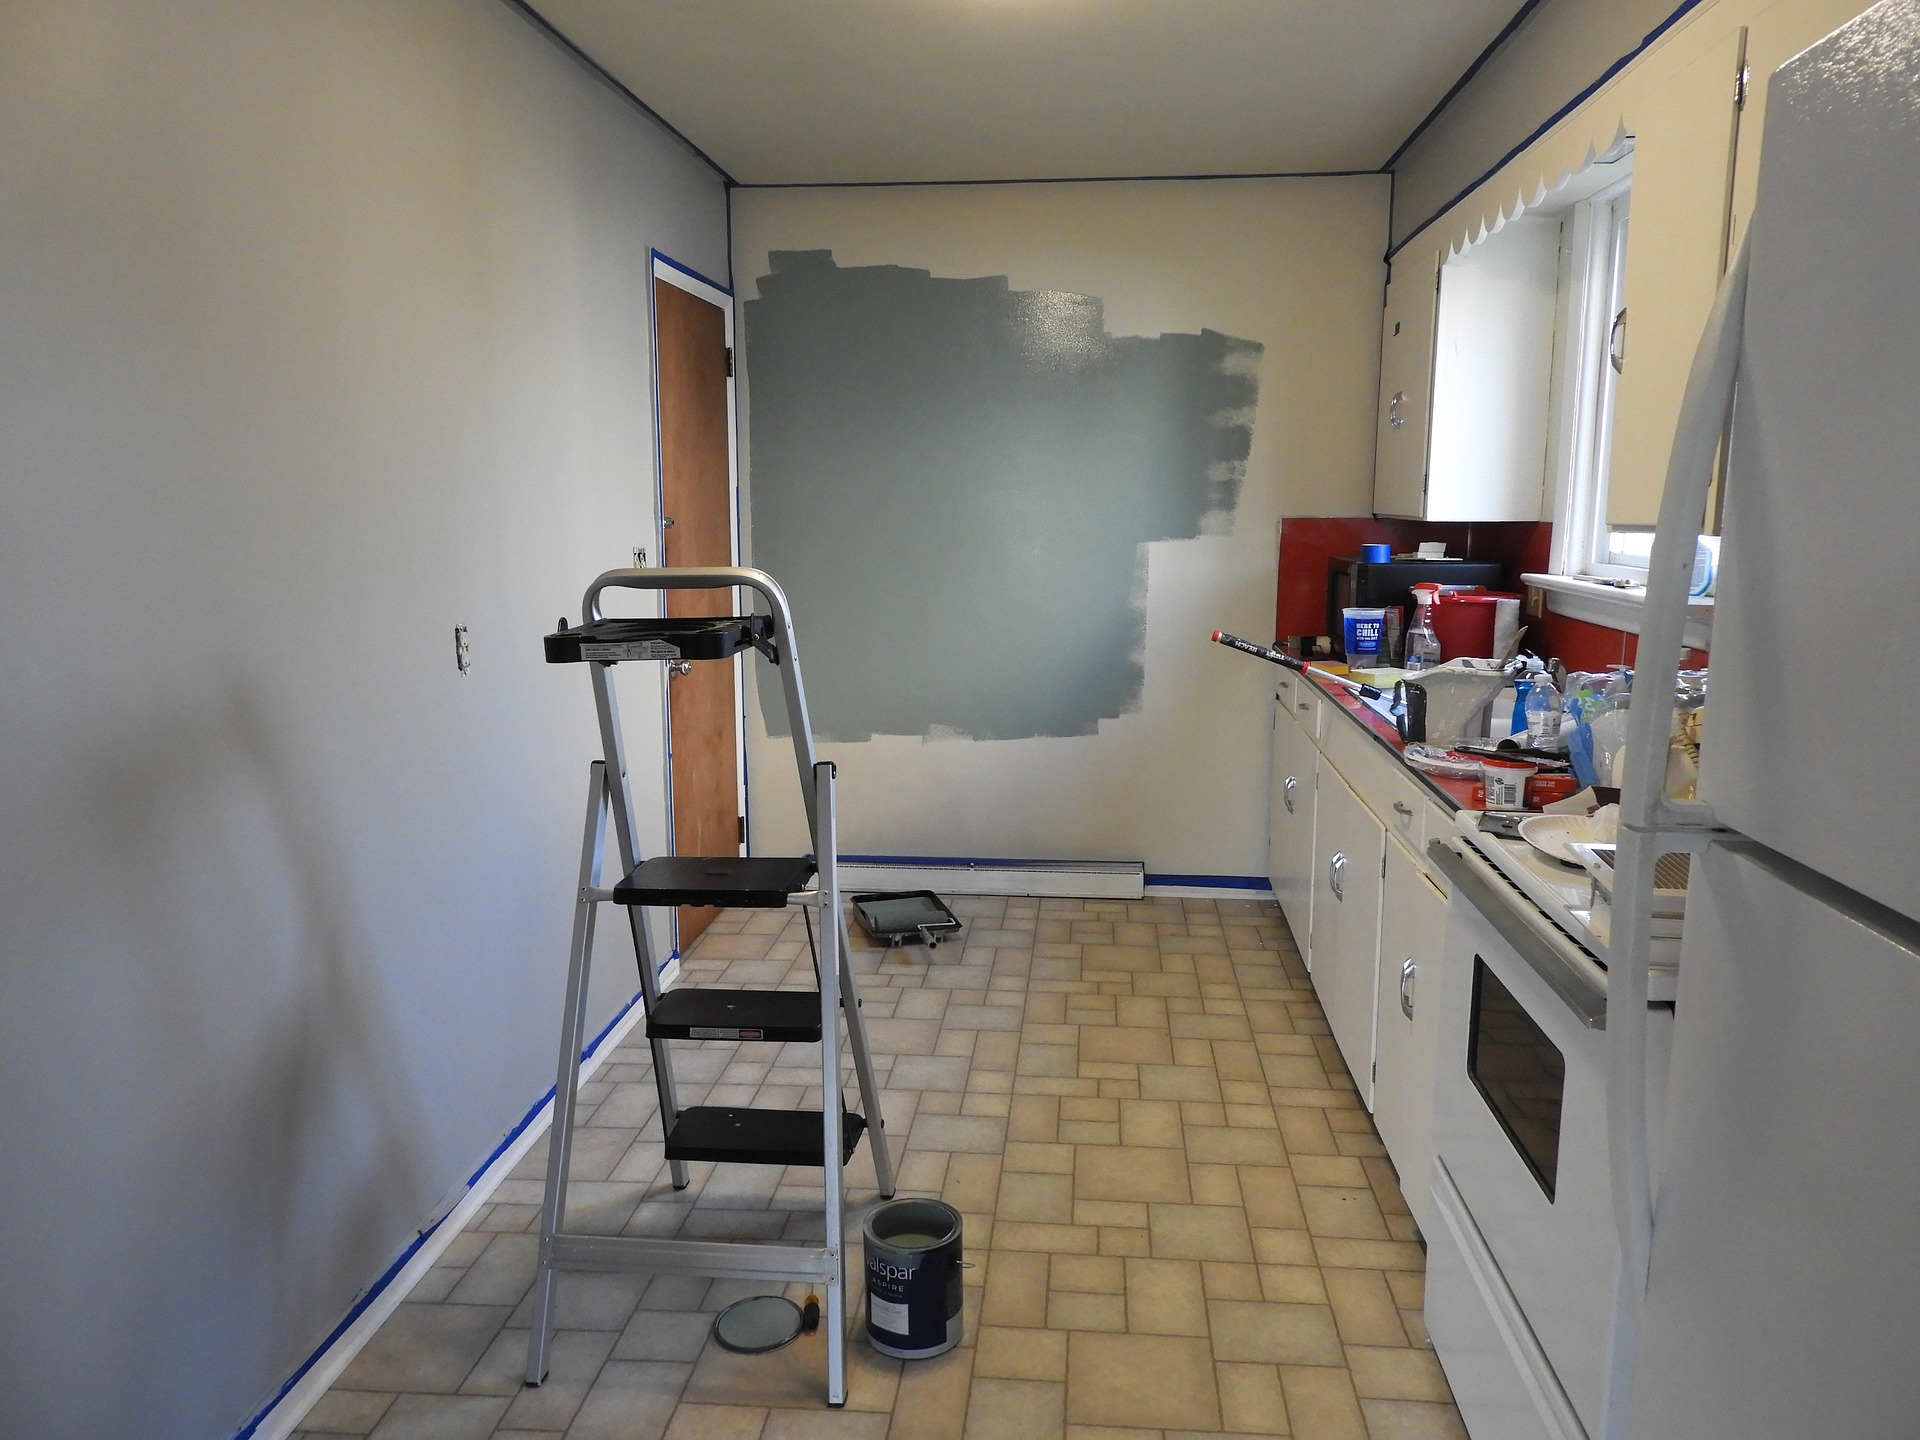 image showing the kitchen before remodeling began